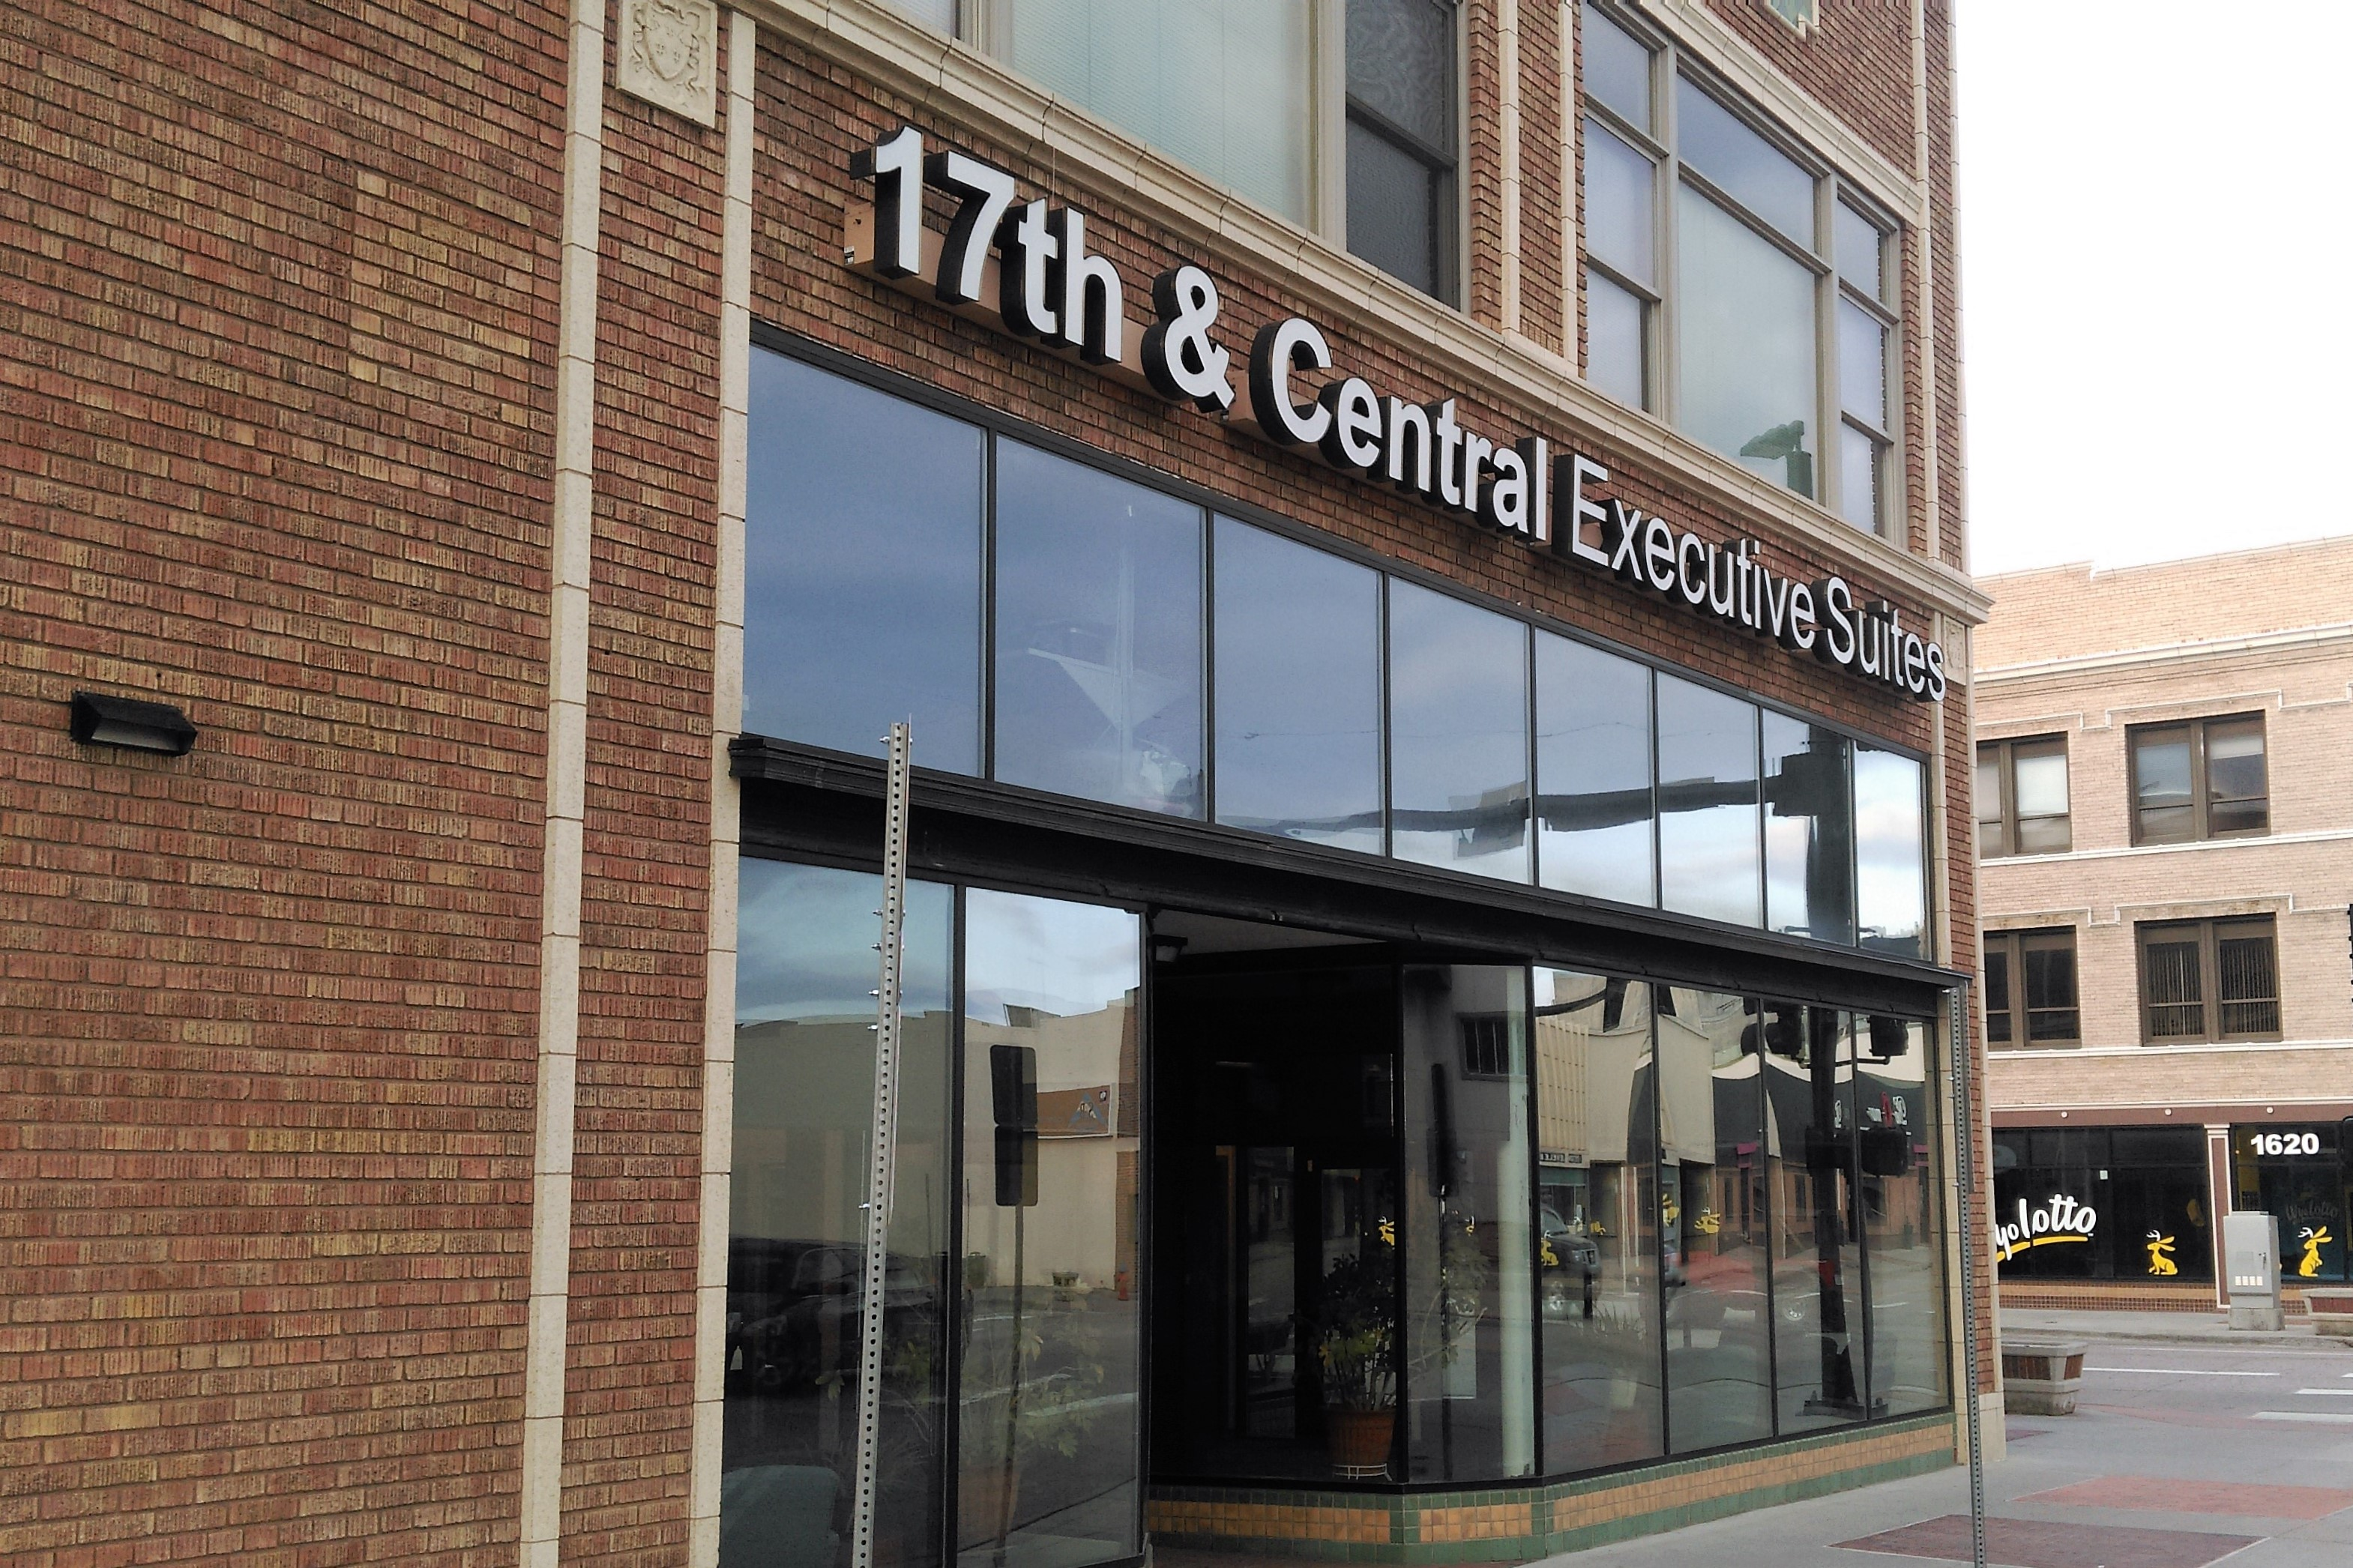 17th and Central Executive Suites